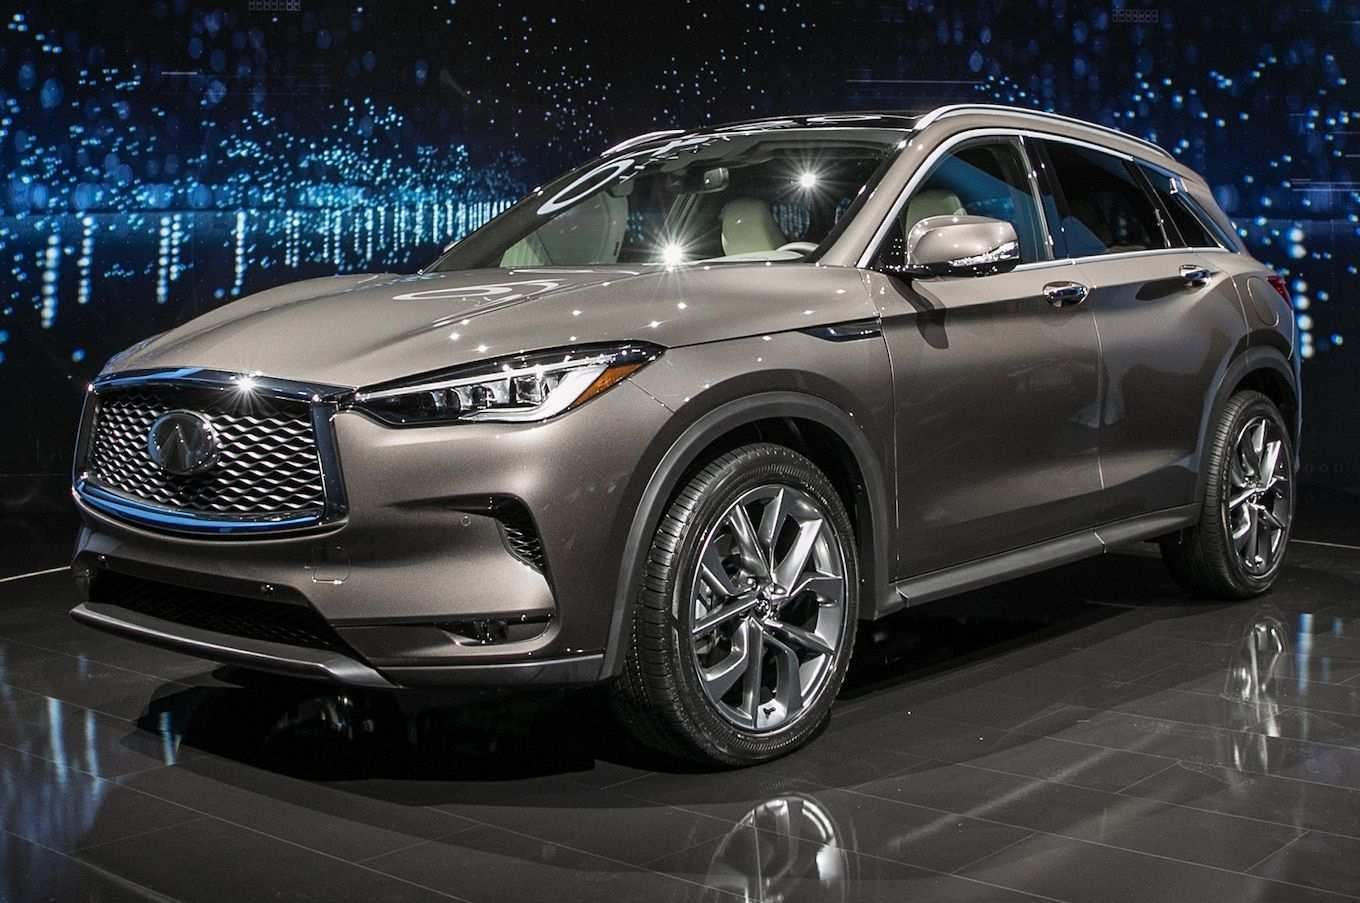 63 Concept of Infiniti New Models 2019 Concept Redesign And Review First Drive by Infiniti New Models 2019 Concept Redesign And Review